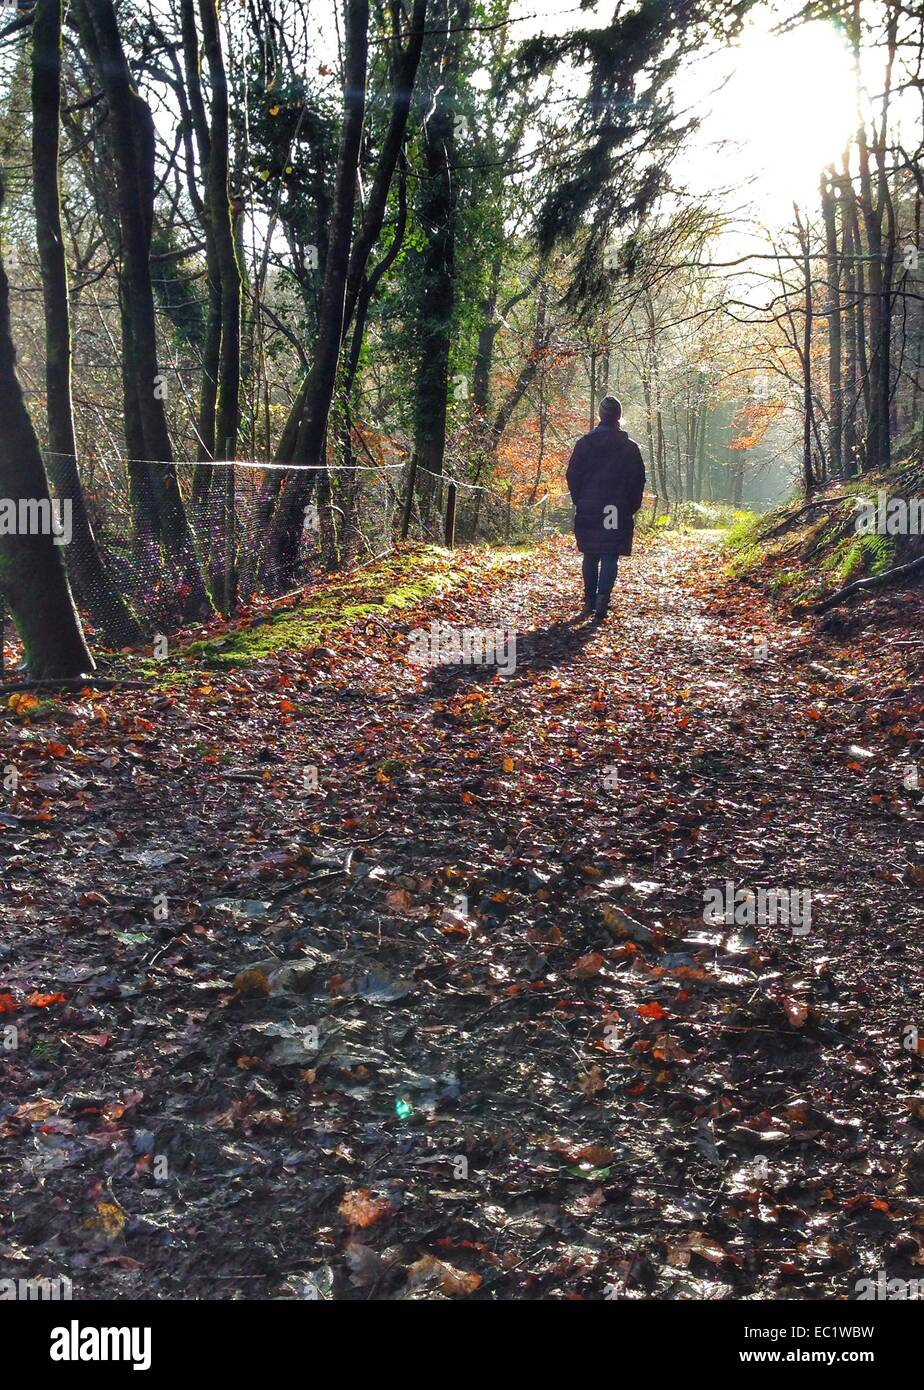 Dunsford, Devon, UK. 8th December, 2014. Morning sunshine and the last colours of Autumn in Fingle woods, Devon. - Stock Image